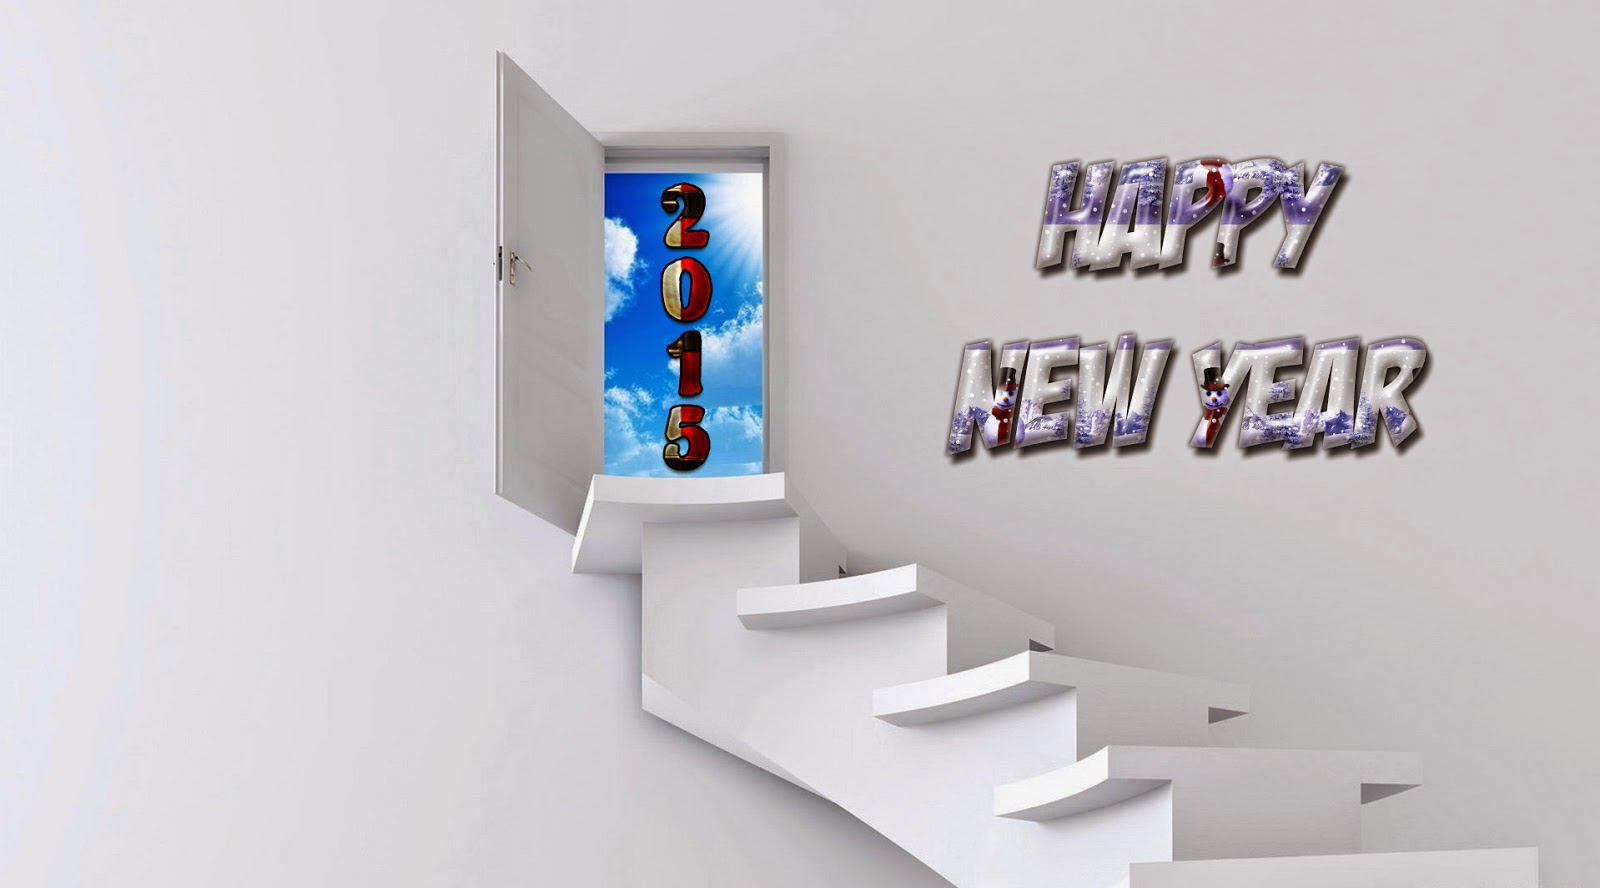 Happy New Year 2015 - HD Wallpapers